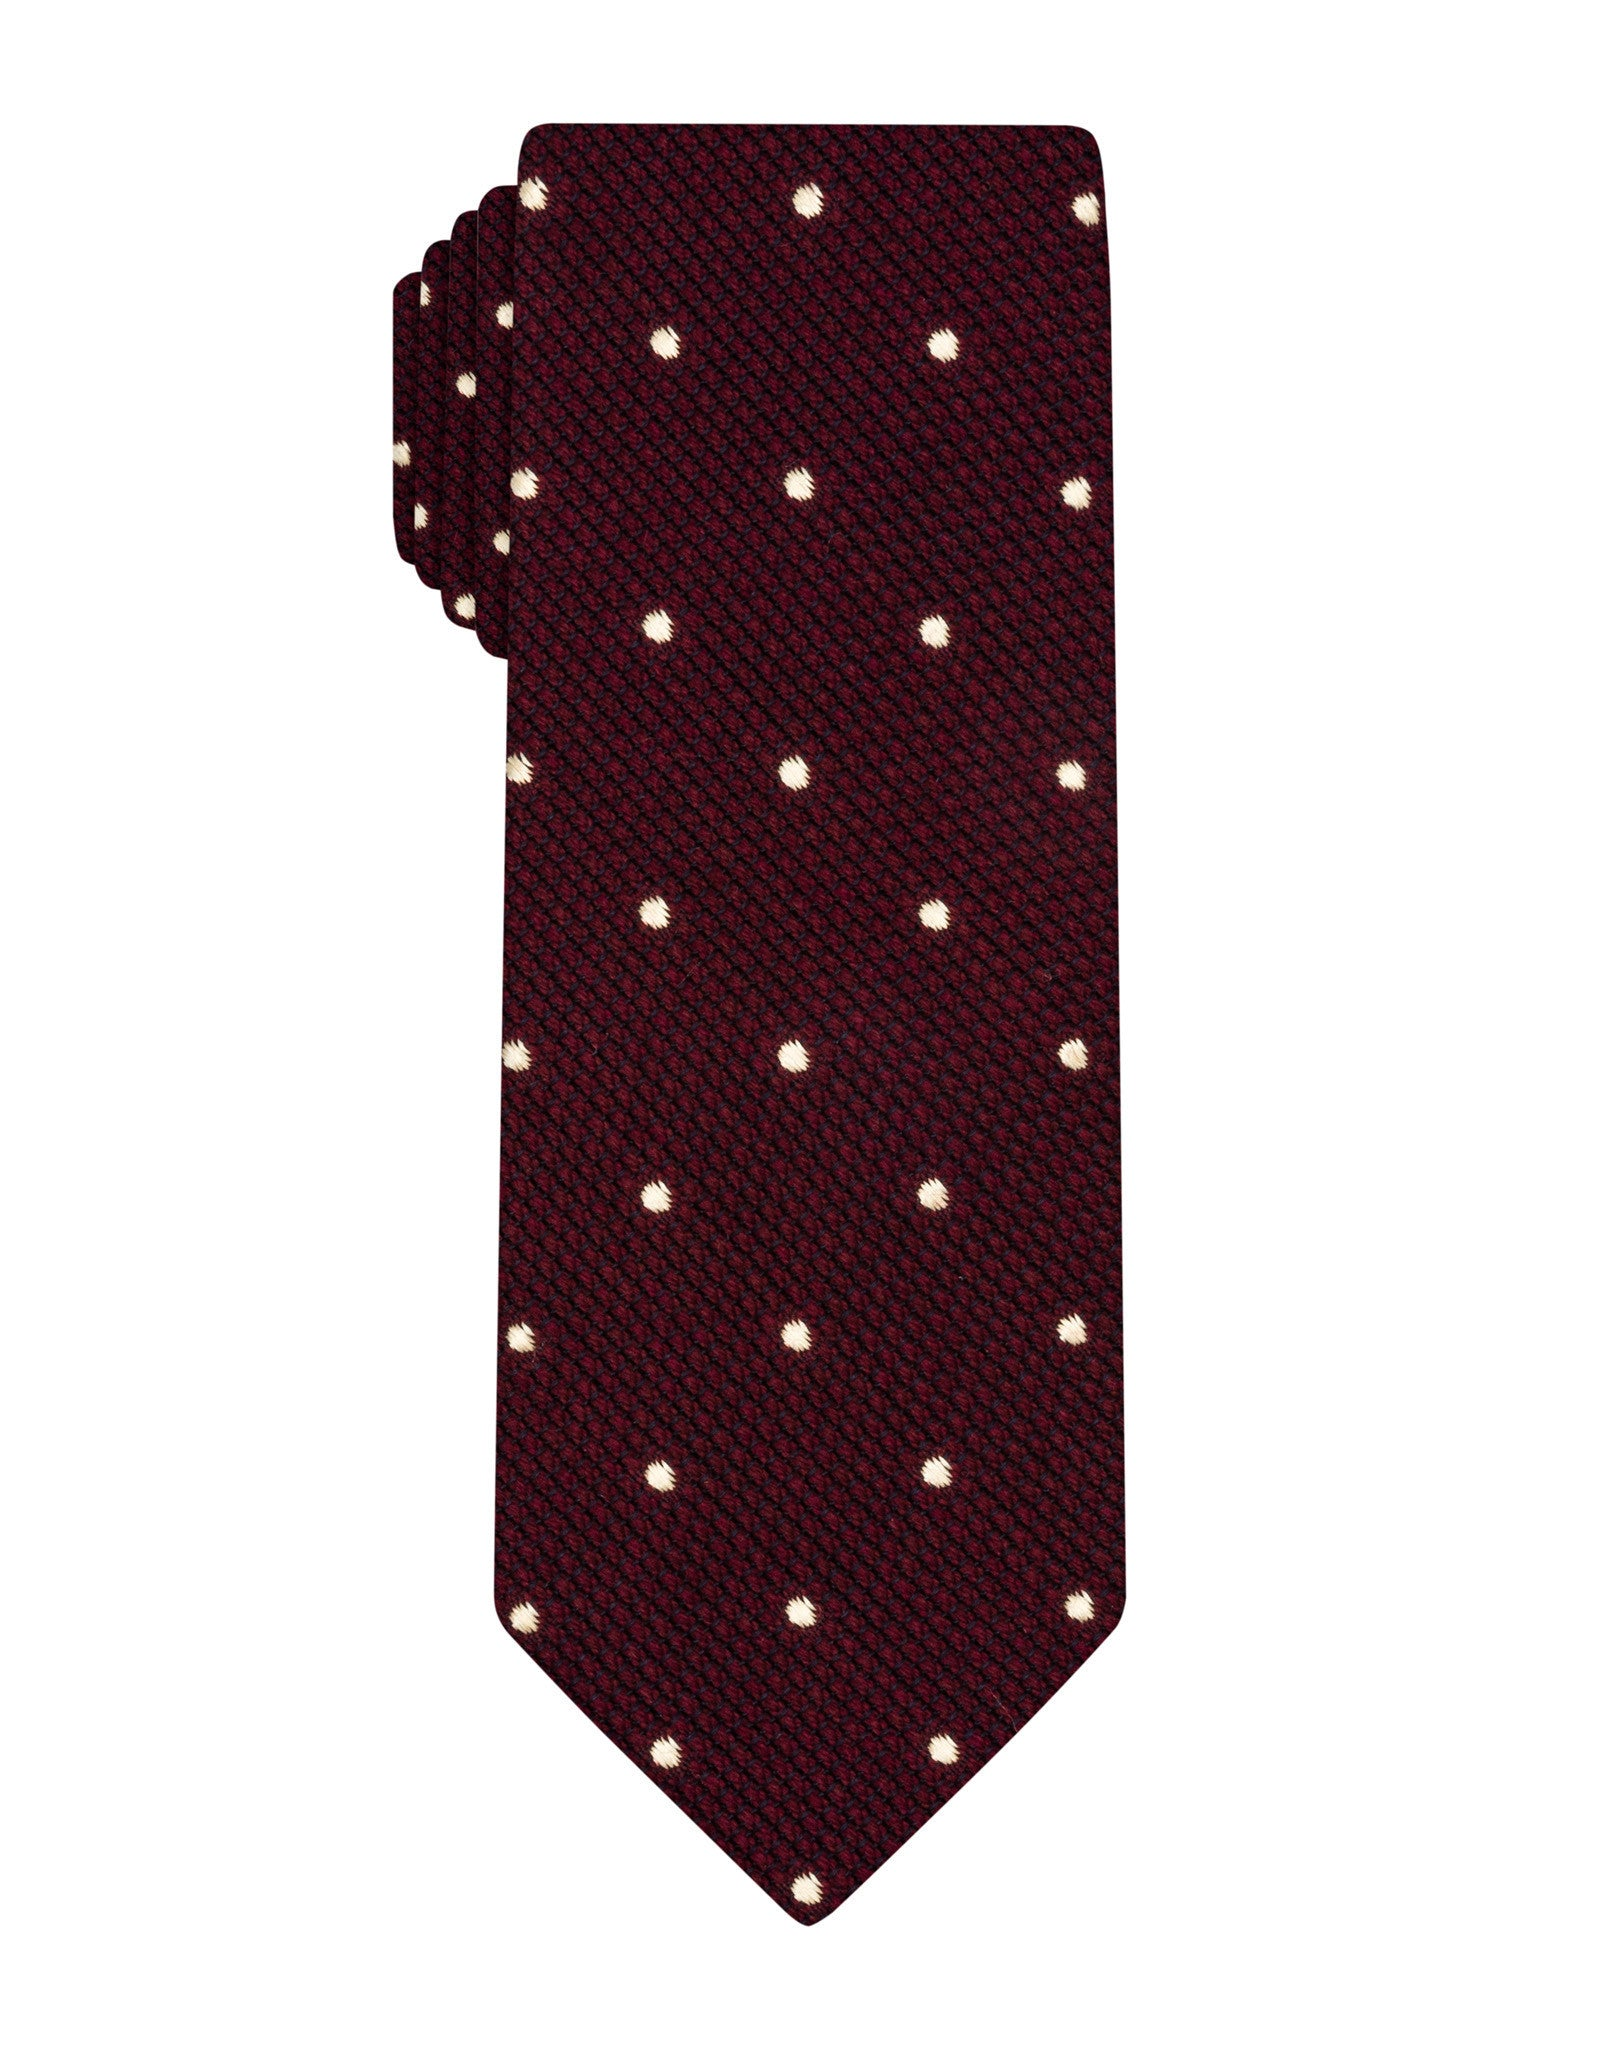 Burgundy Wool Grenadine Polka Dot Tie